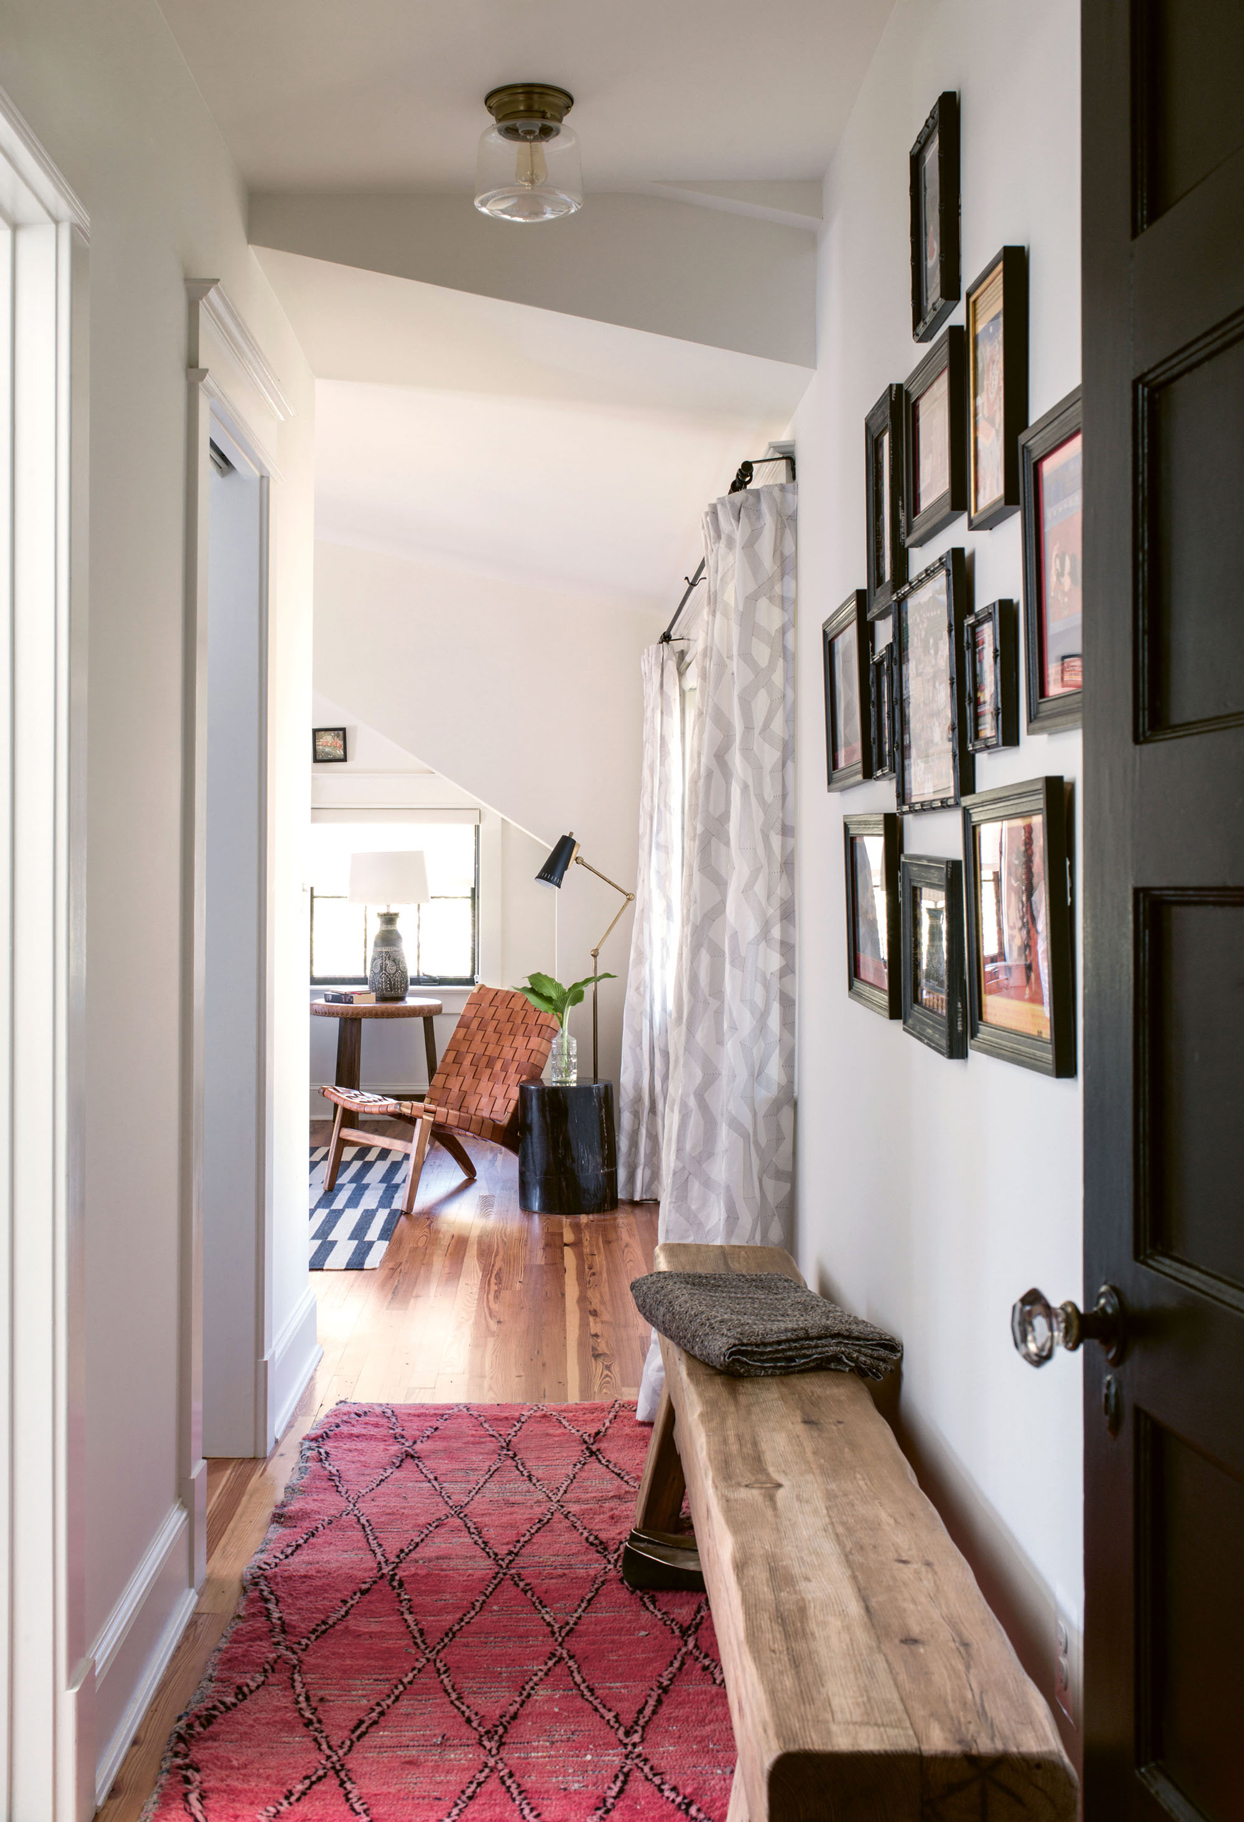 vintage bench and rug lining wide hallway